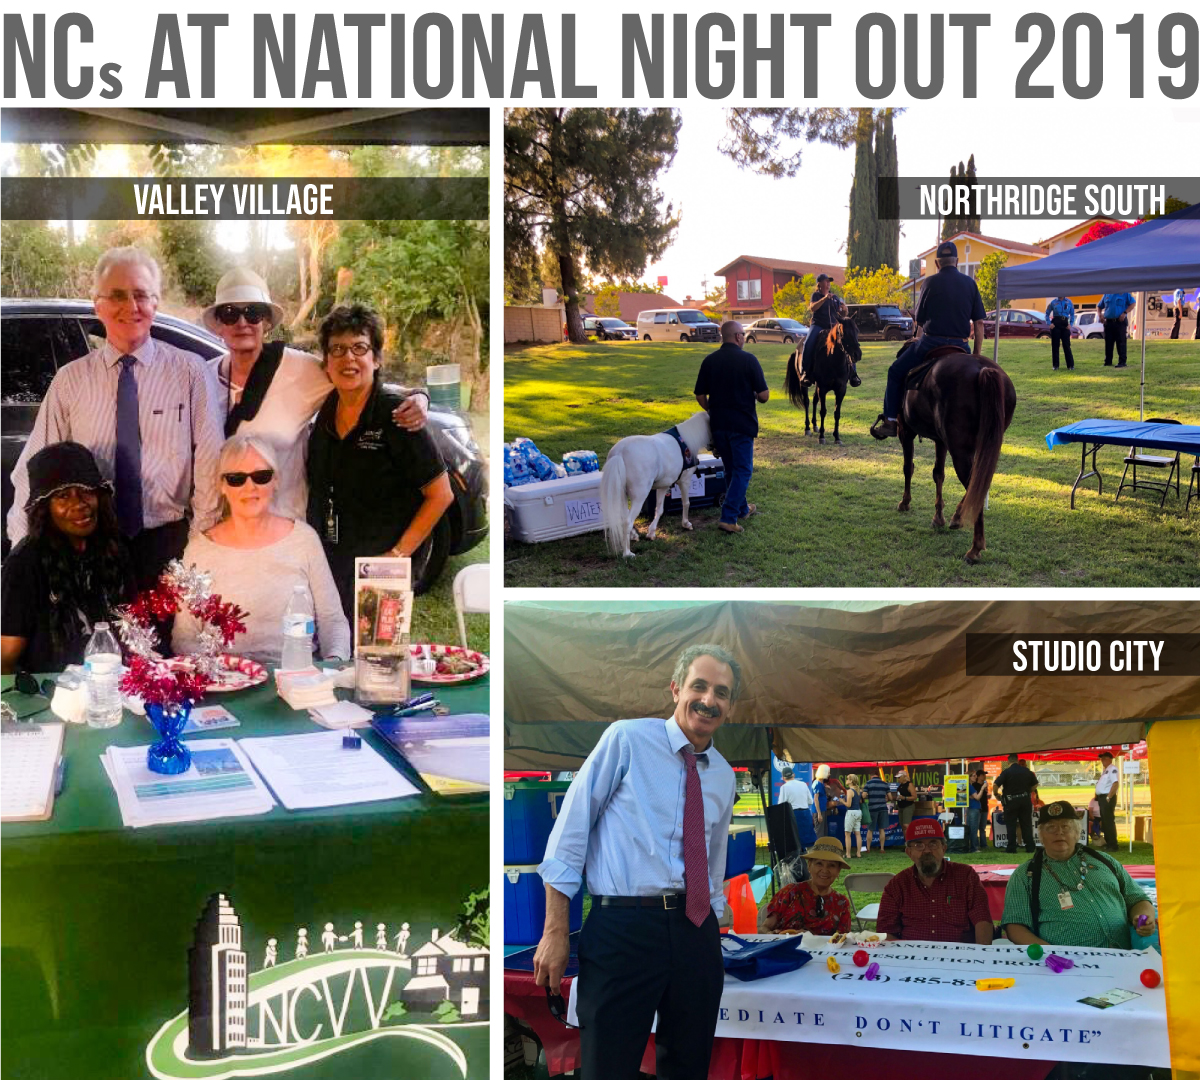 Neighborhood Council National Night Out 2019 photos from Valley Village, Northridge South & Studio City